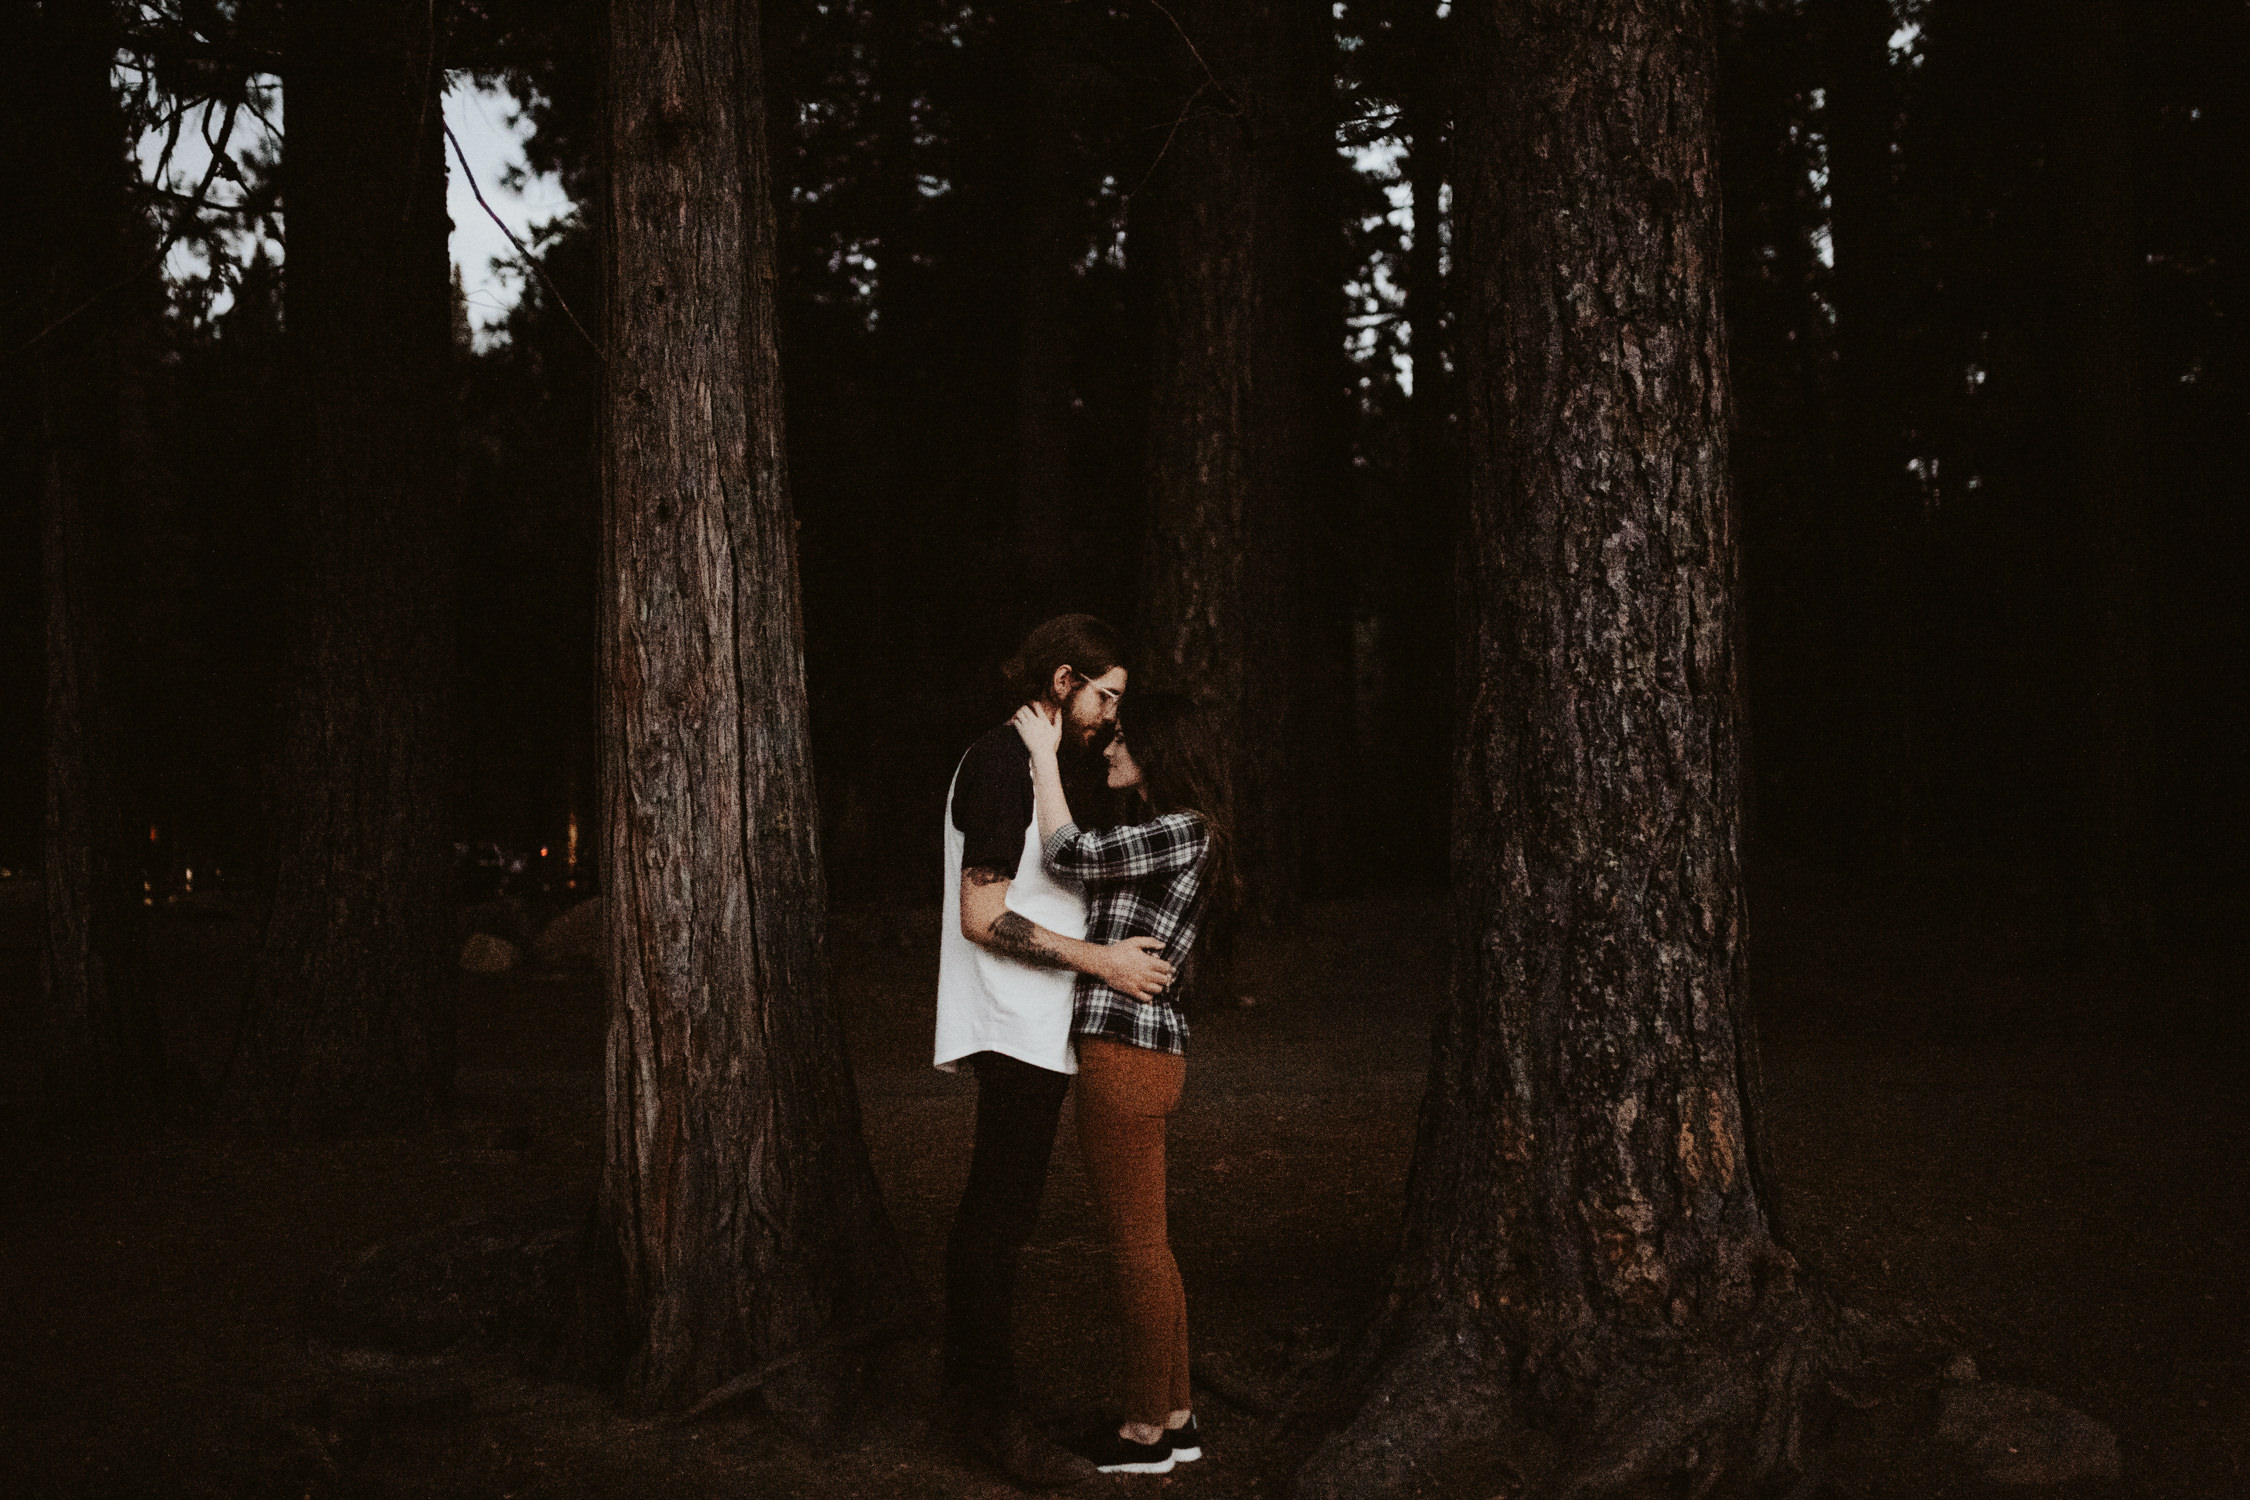 couple-intimate-engagement-session-northern-california-85.jpg